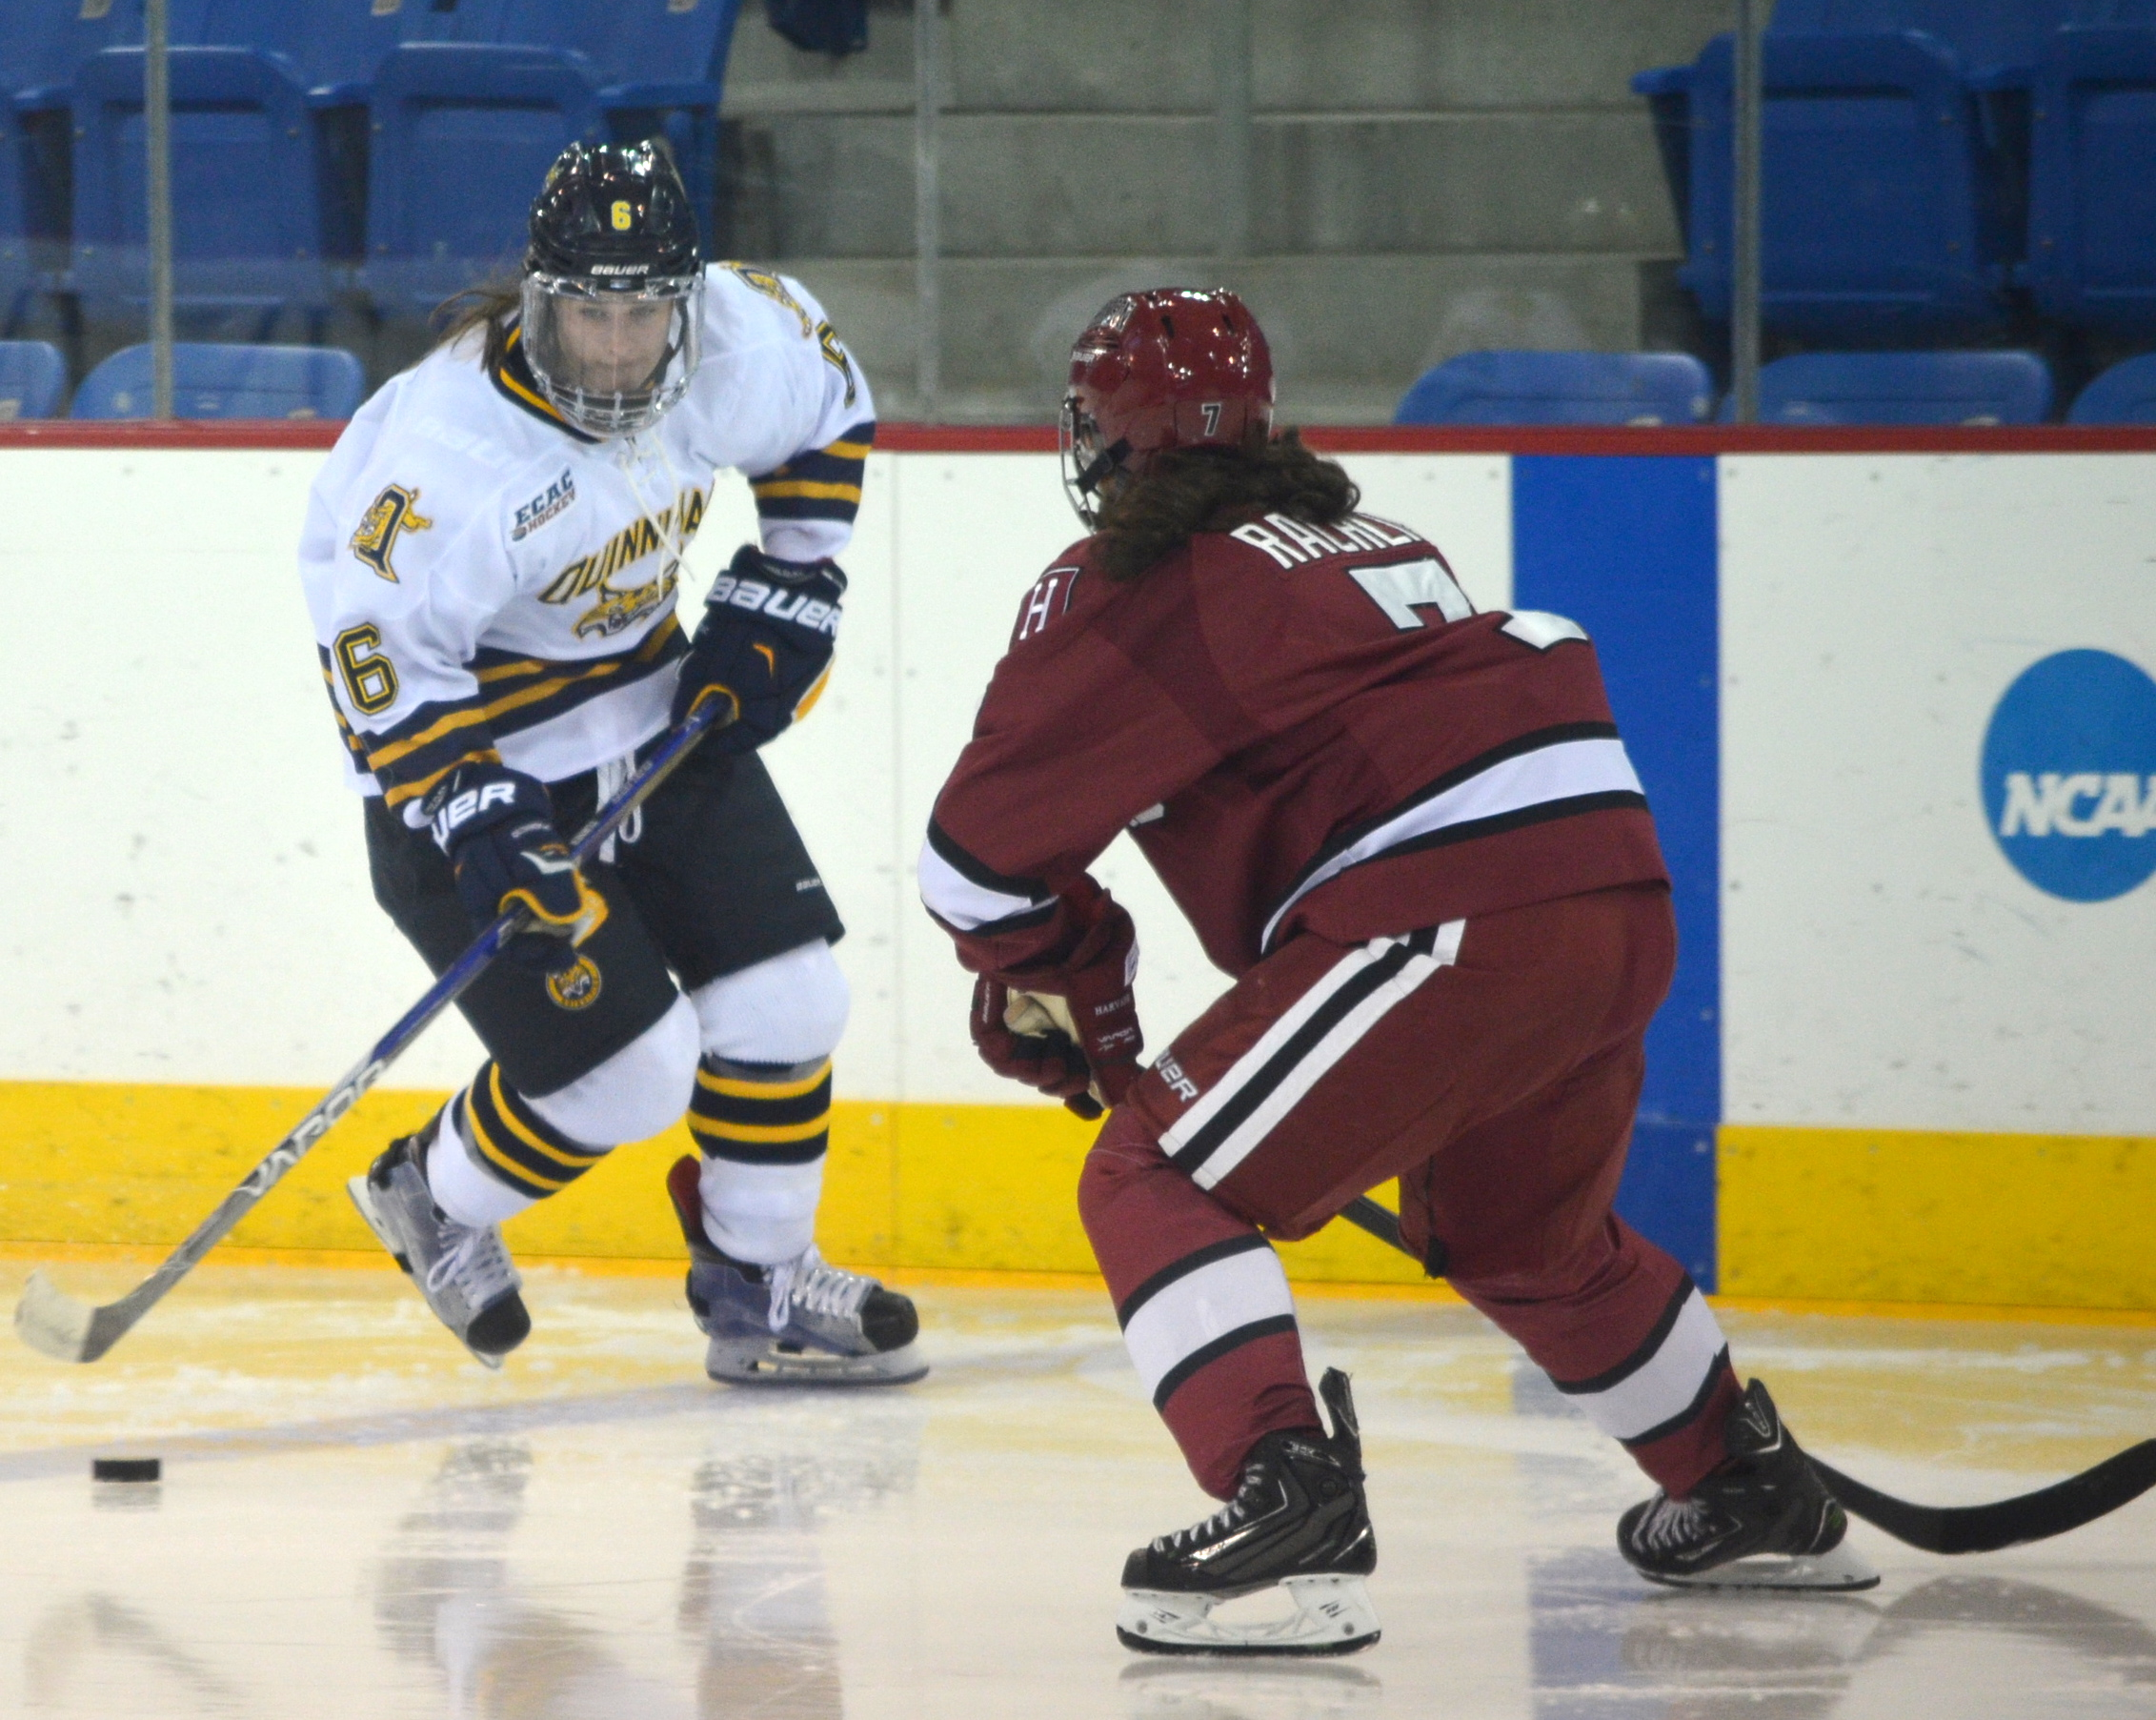 Jordan Novack|Quinnipiac Chronicle Meghan Turner carries the puck into the offensive zone vs Harvard 12/5/15